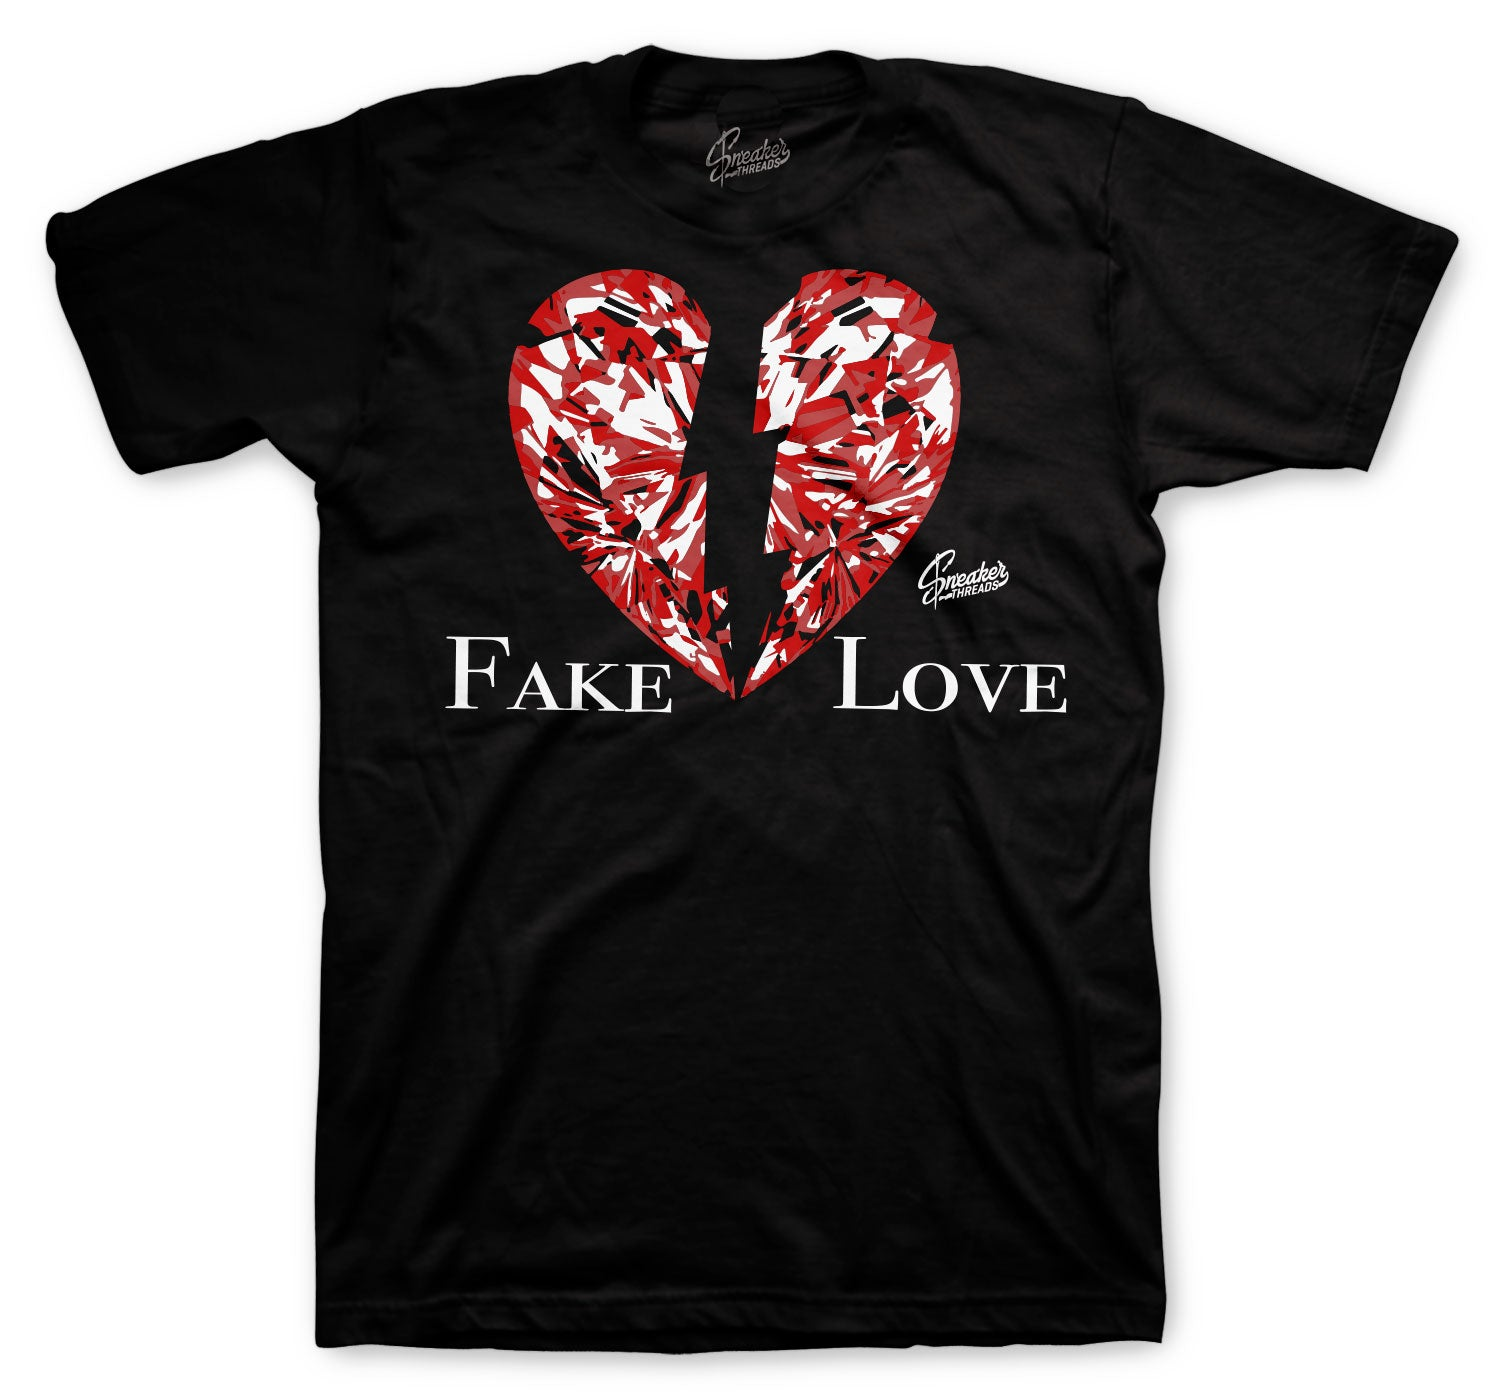 Jordan 6 Carmine Shirt - Fake Love - Black